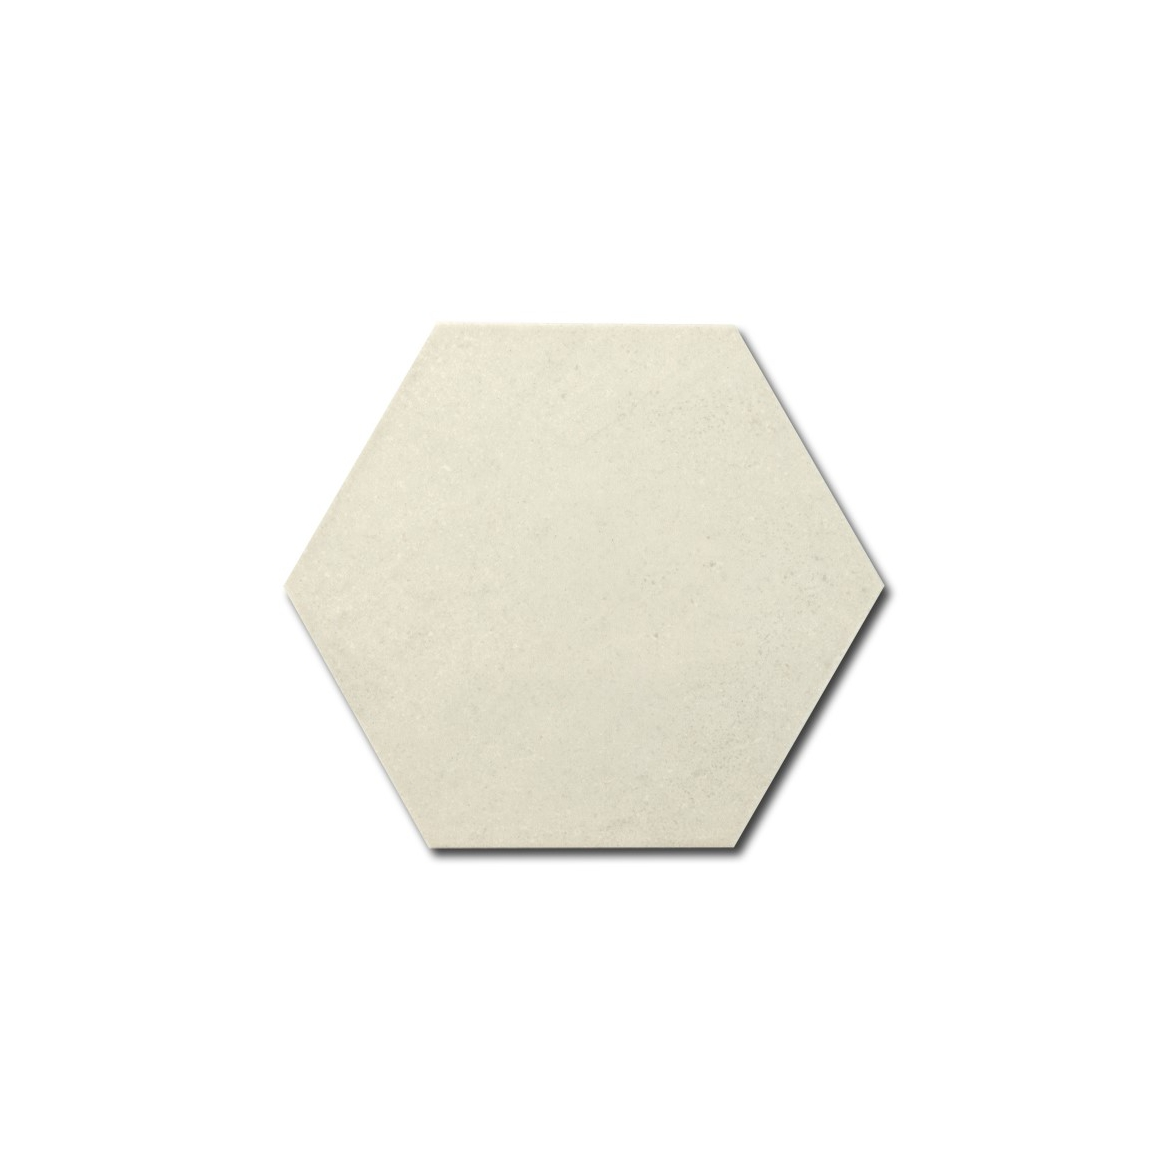 https://cerdesign.pl/5589-large_default/p15128-equipe-hexatile-cement-white-175x20-22092.jpg